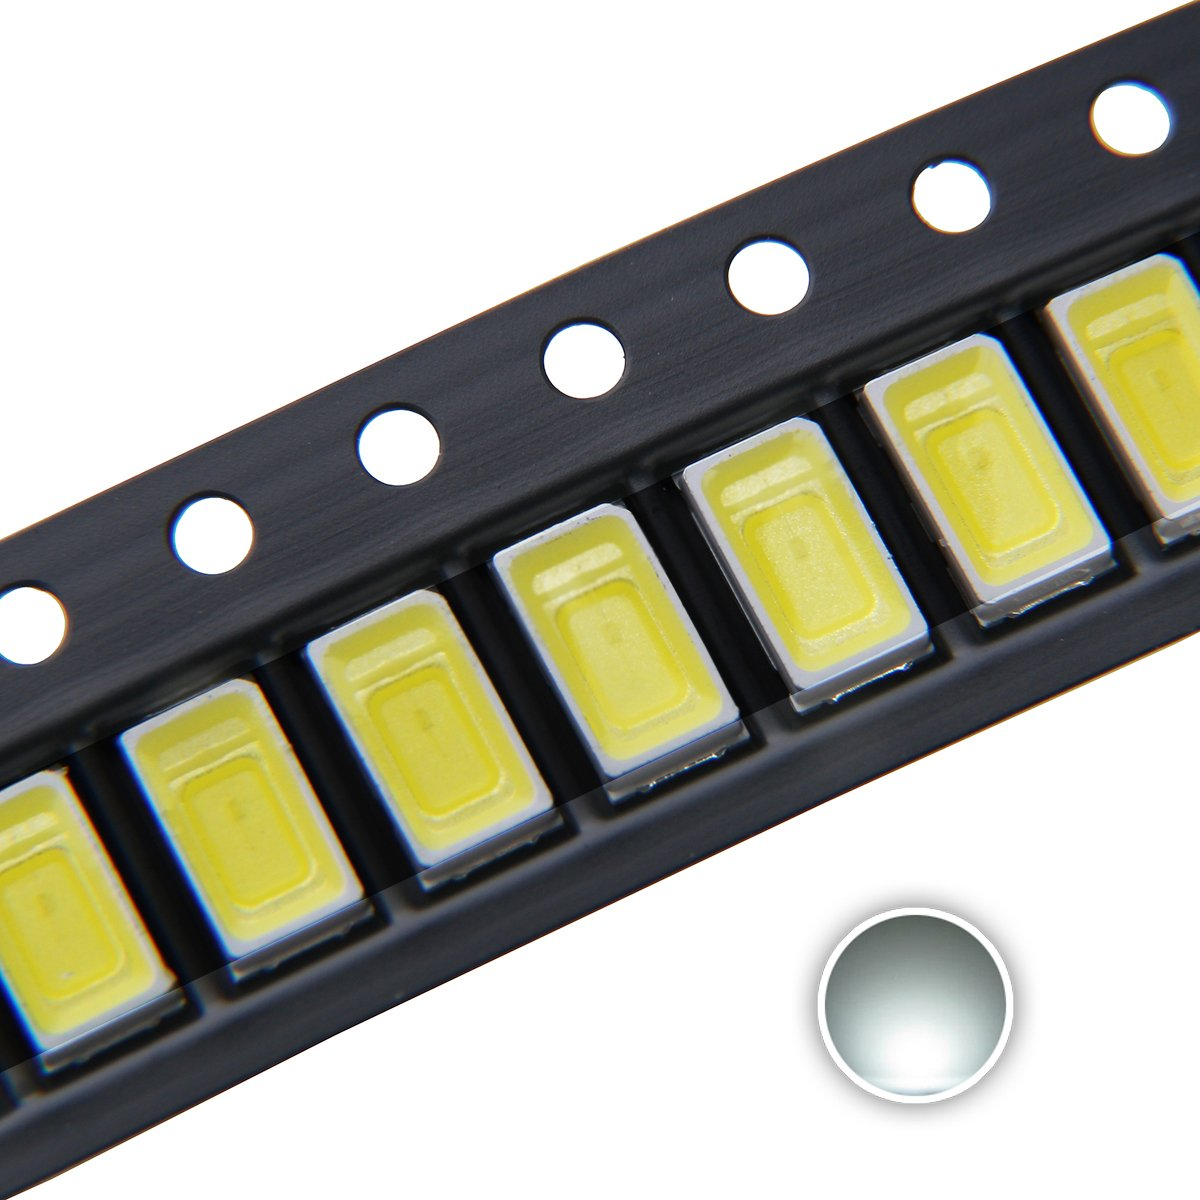 5730 (5630) SMD LED Diode Lights Chips Emitting White/Red/Green/Blue/Yellow/Purple/Pink